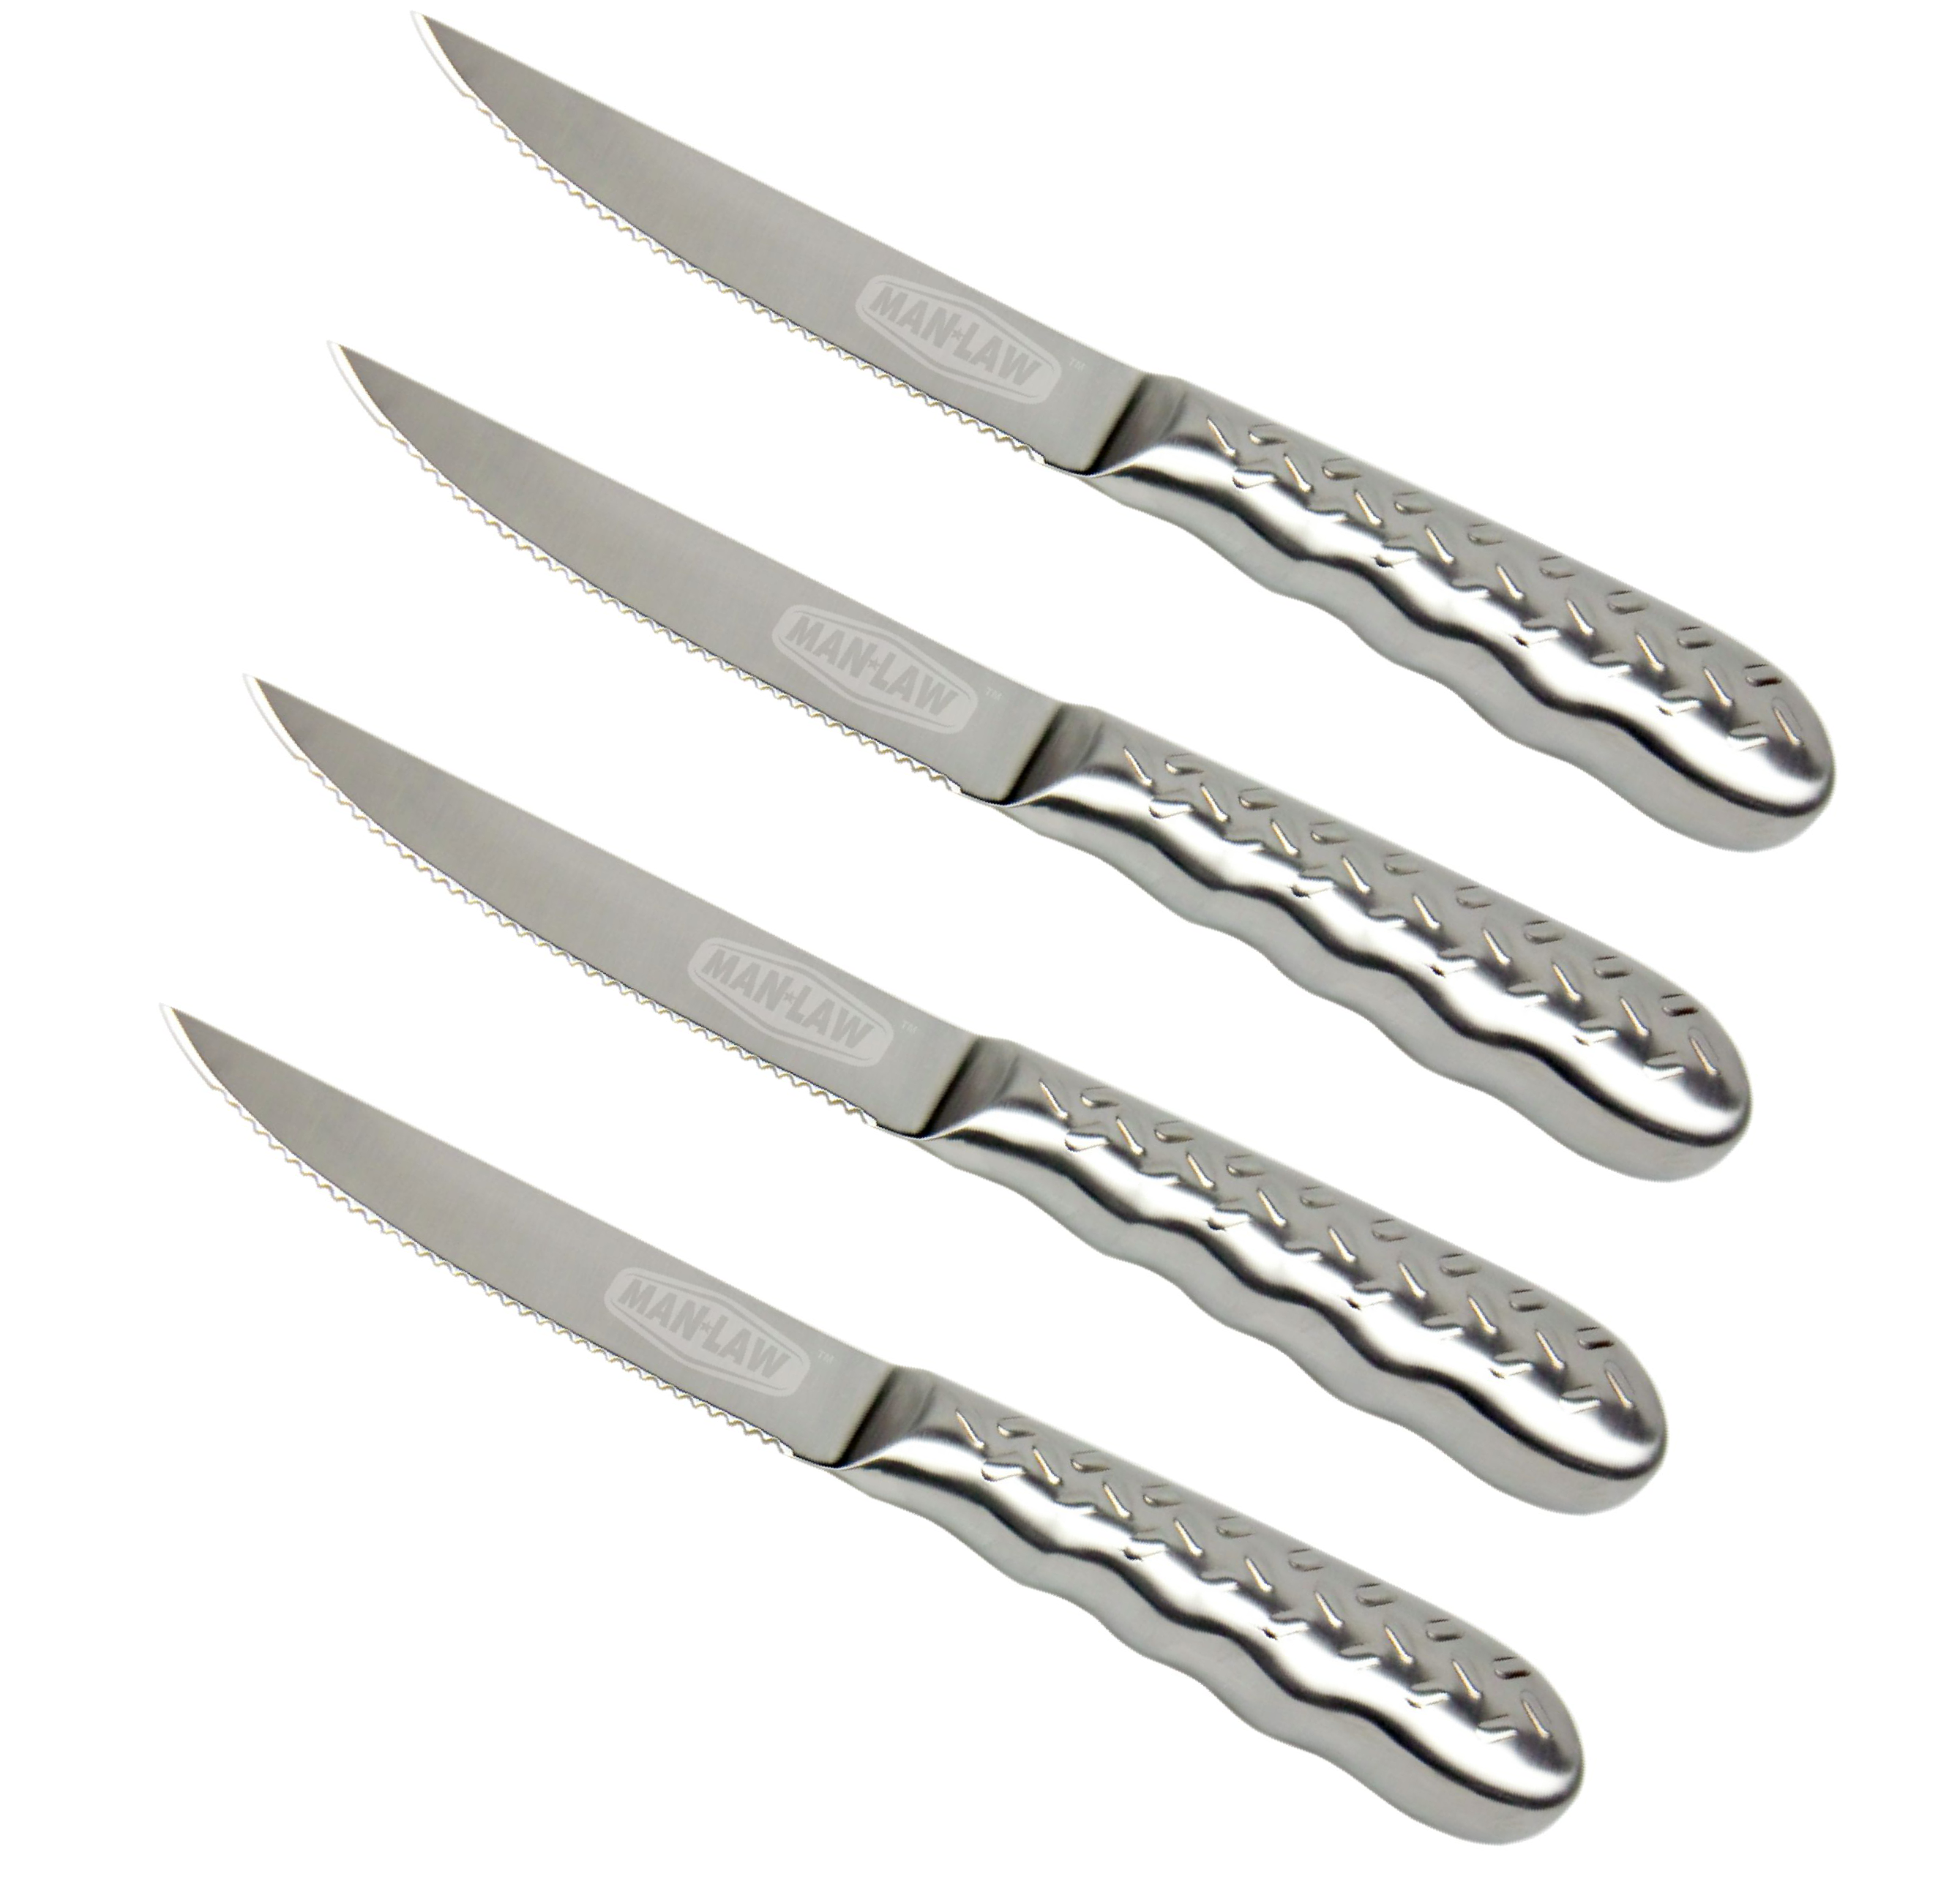 Man law collective brand. Knife clipart steak knife